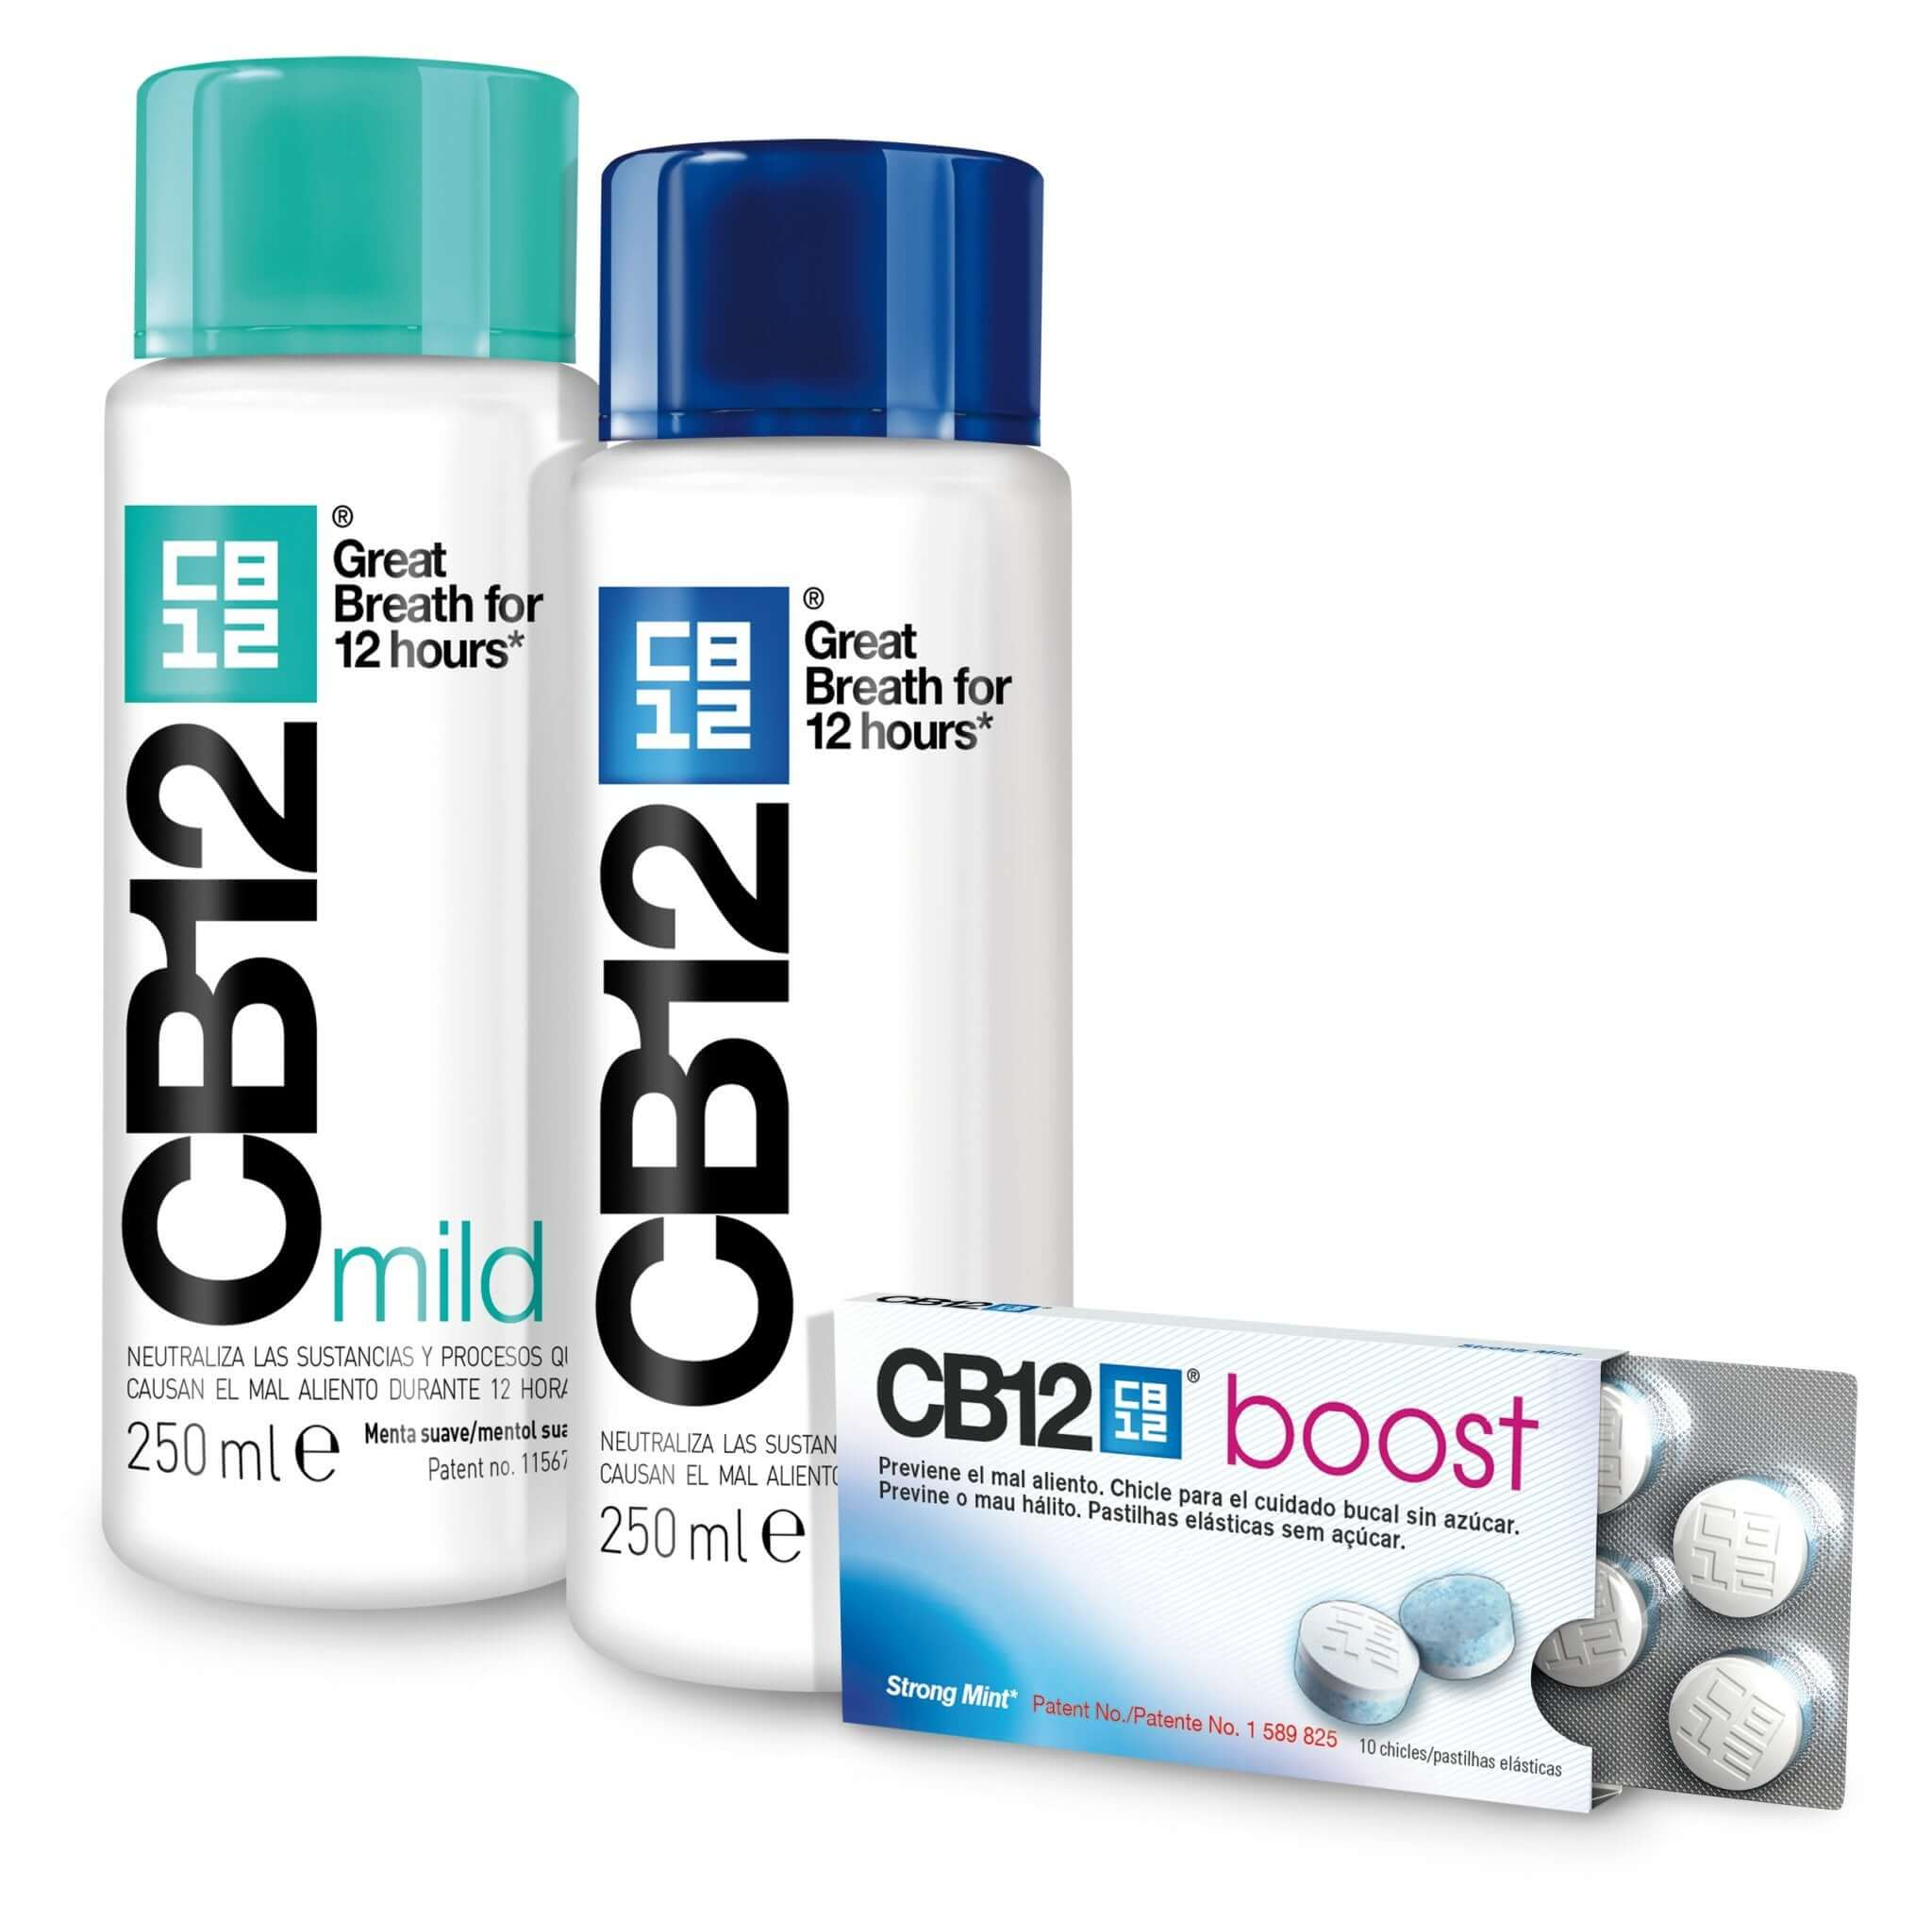 CB12 boost gum and mouthwash.